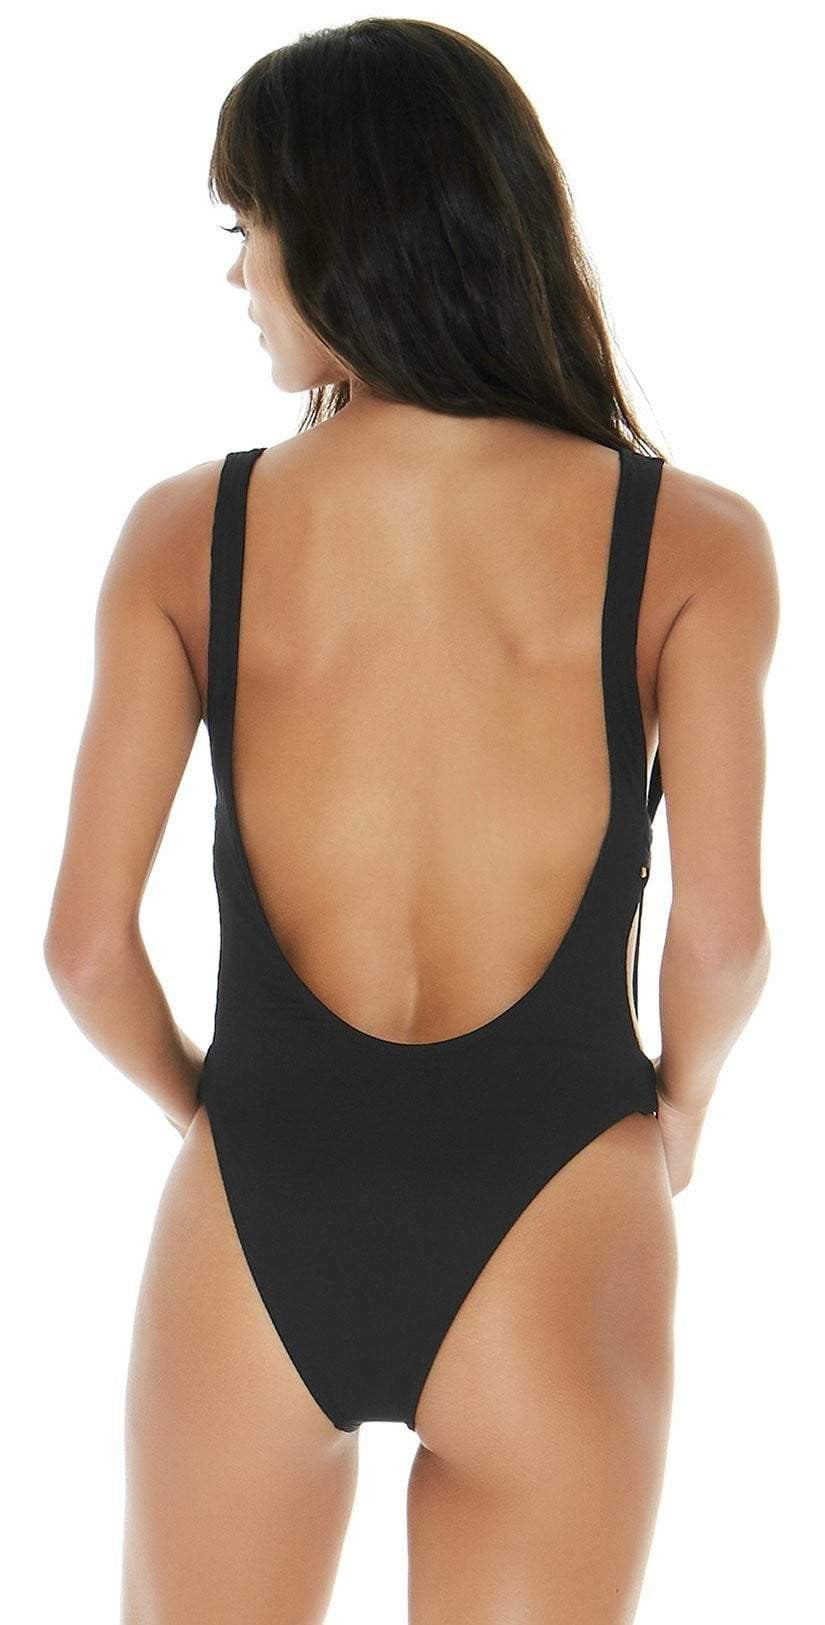 L Space Mayra One-Piece in Black RHMYMC18-BLK: